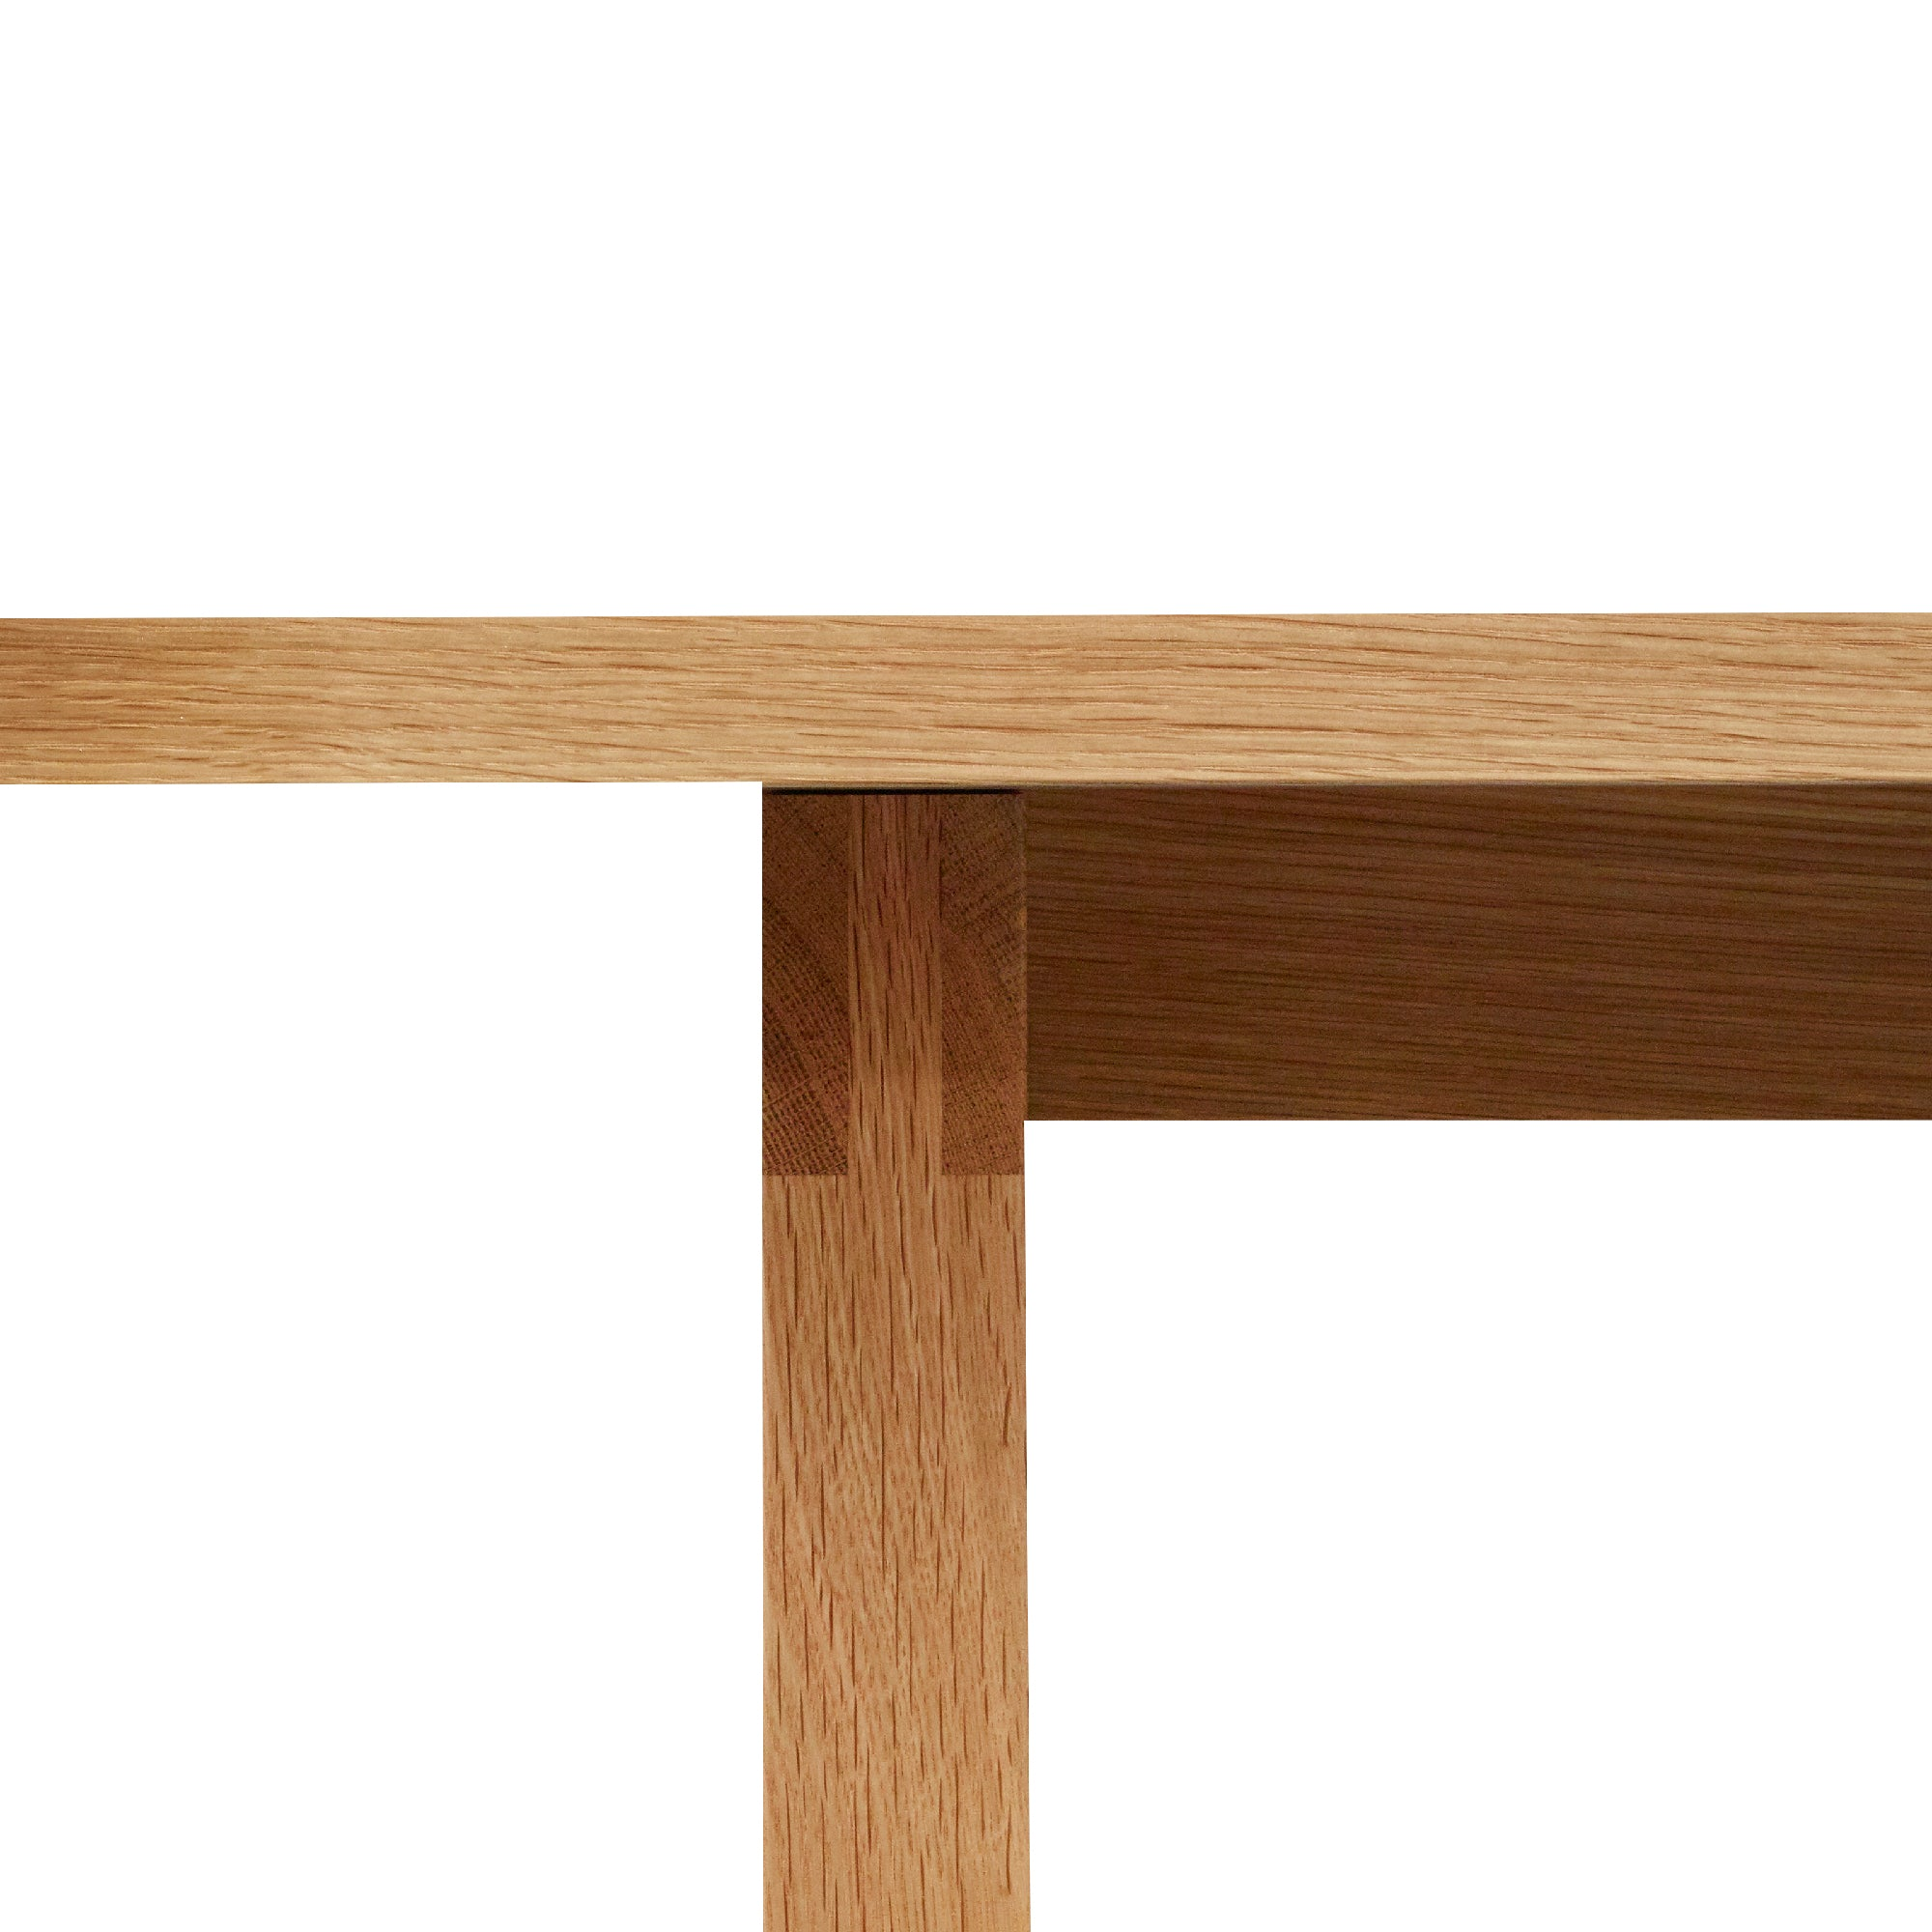 Mortise and tenon joinery in solid white oak on the Union Dining Table